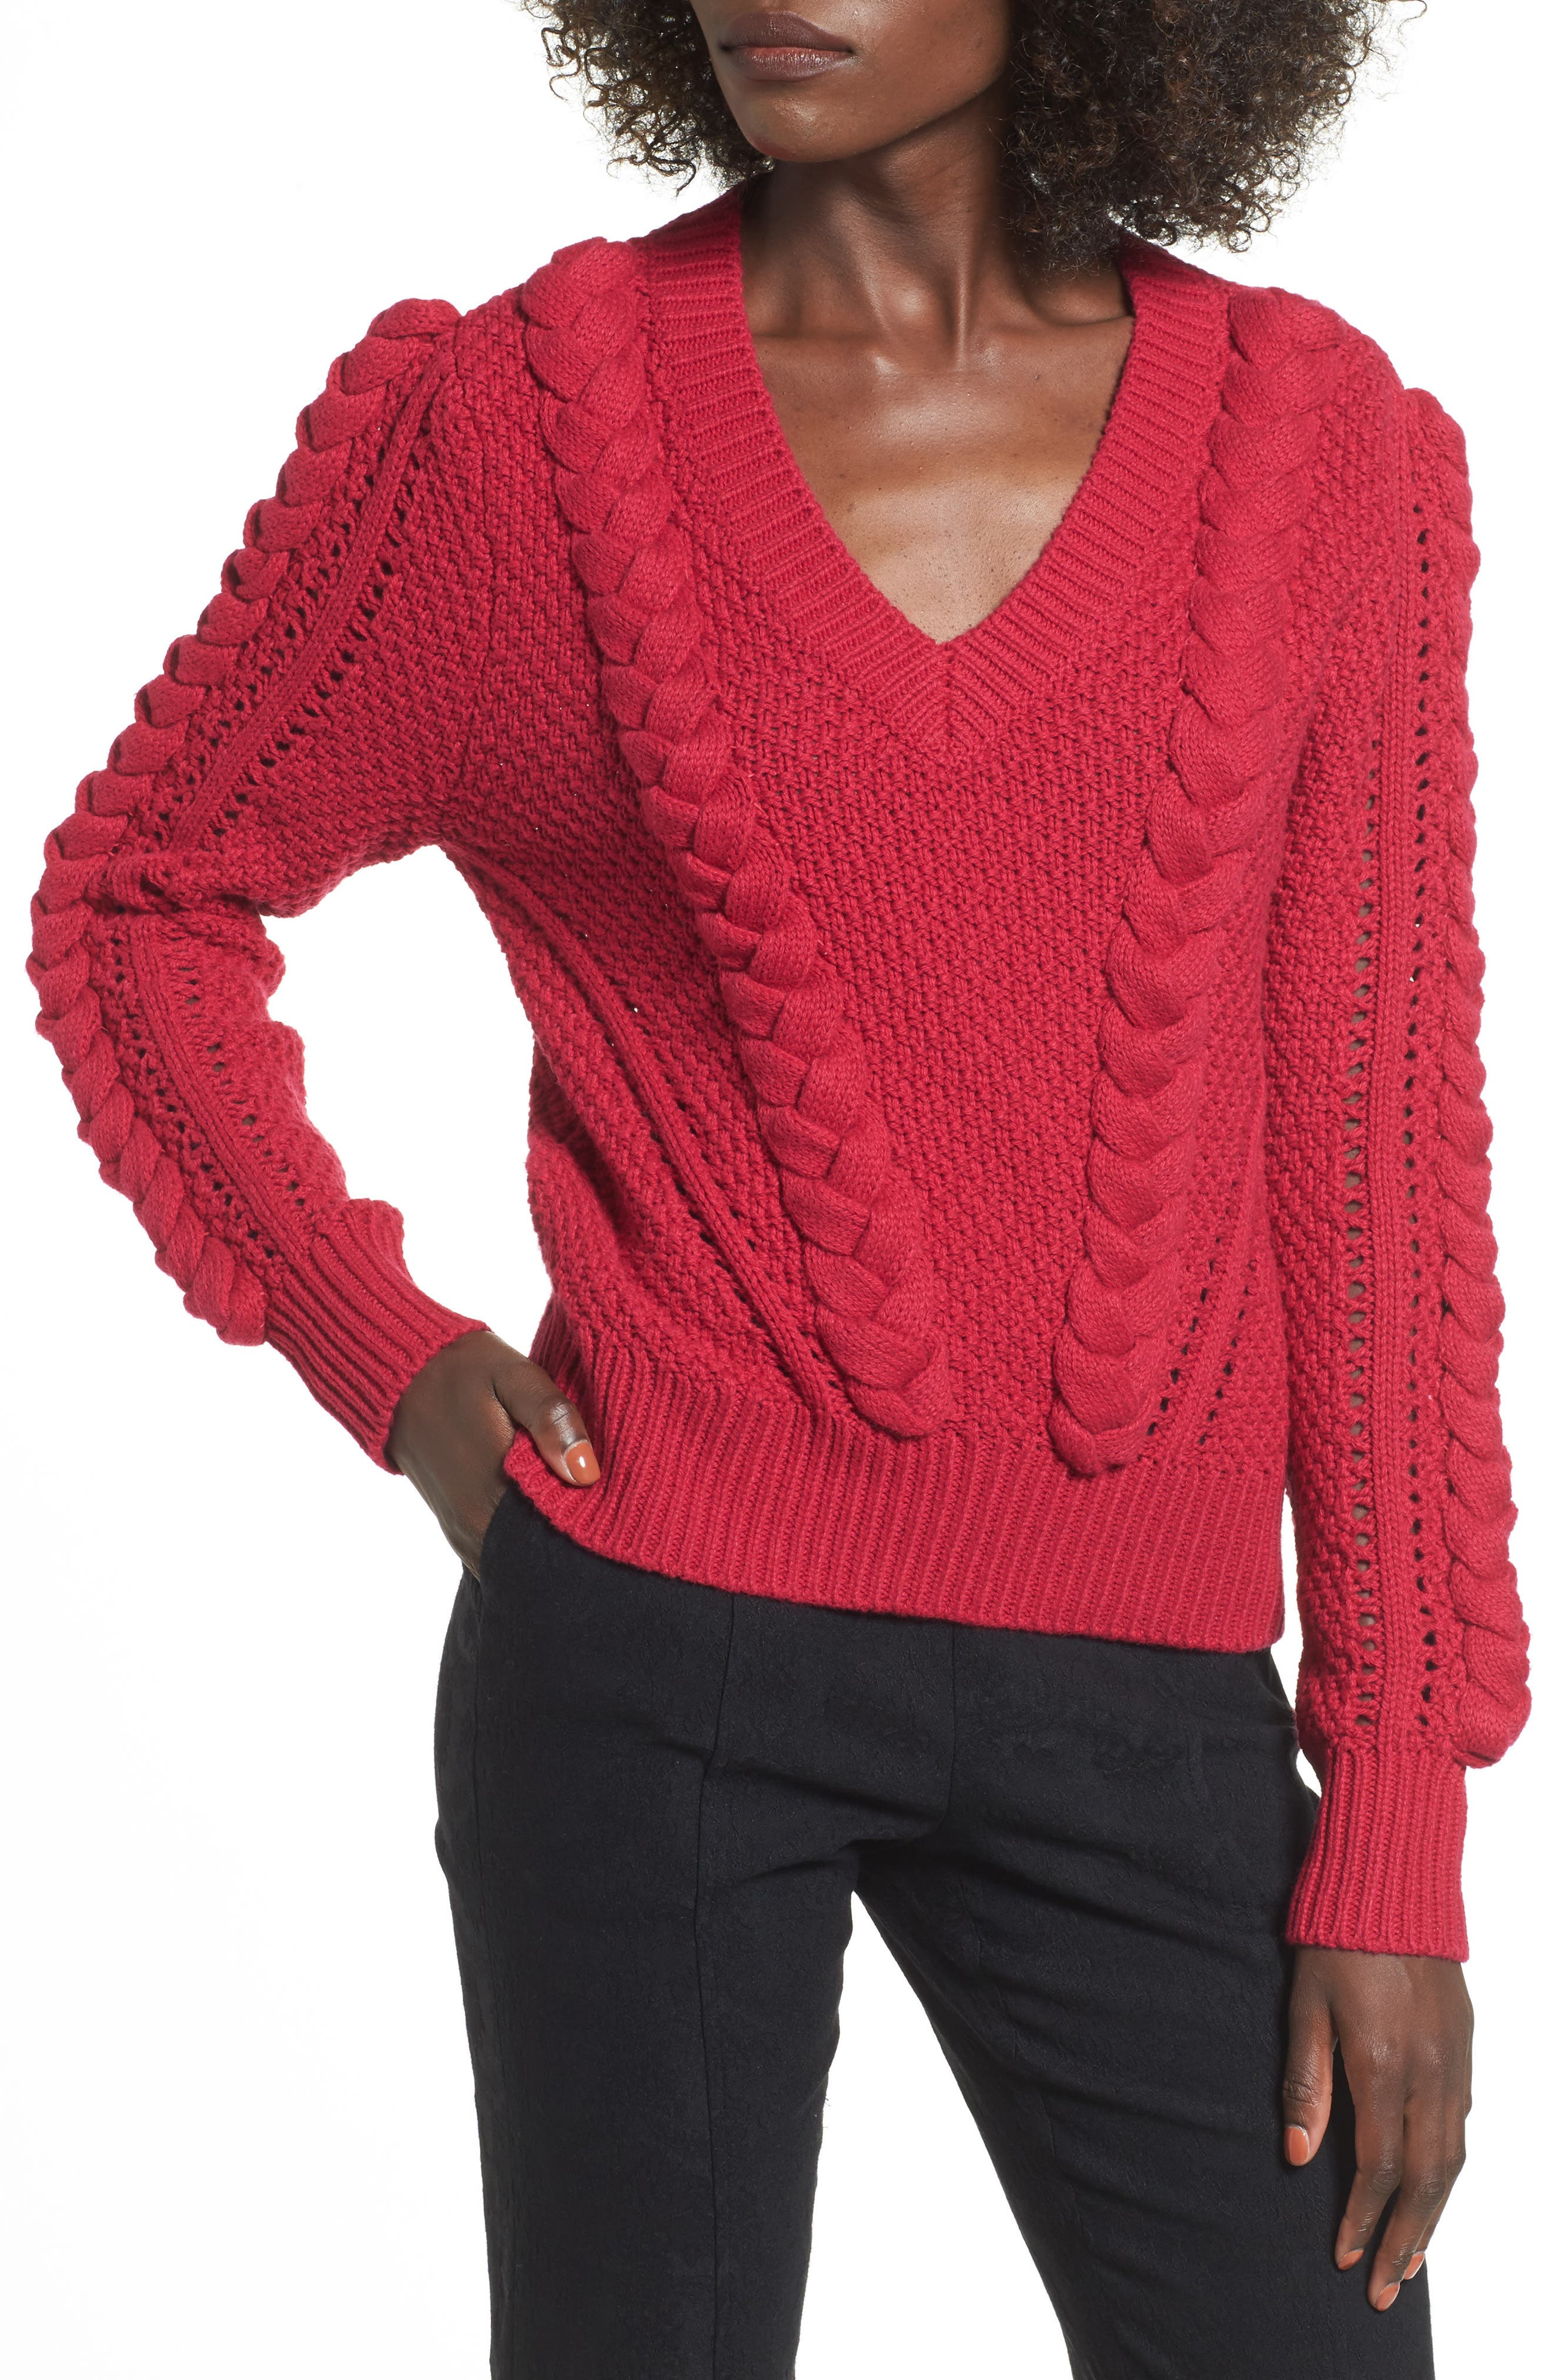 Power Cable Sweater,                             Main thumbnail 1, color,                             Red Cerise